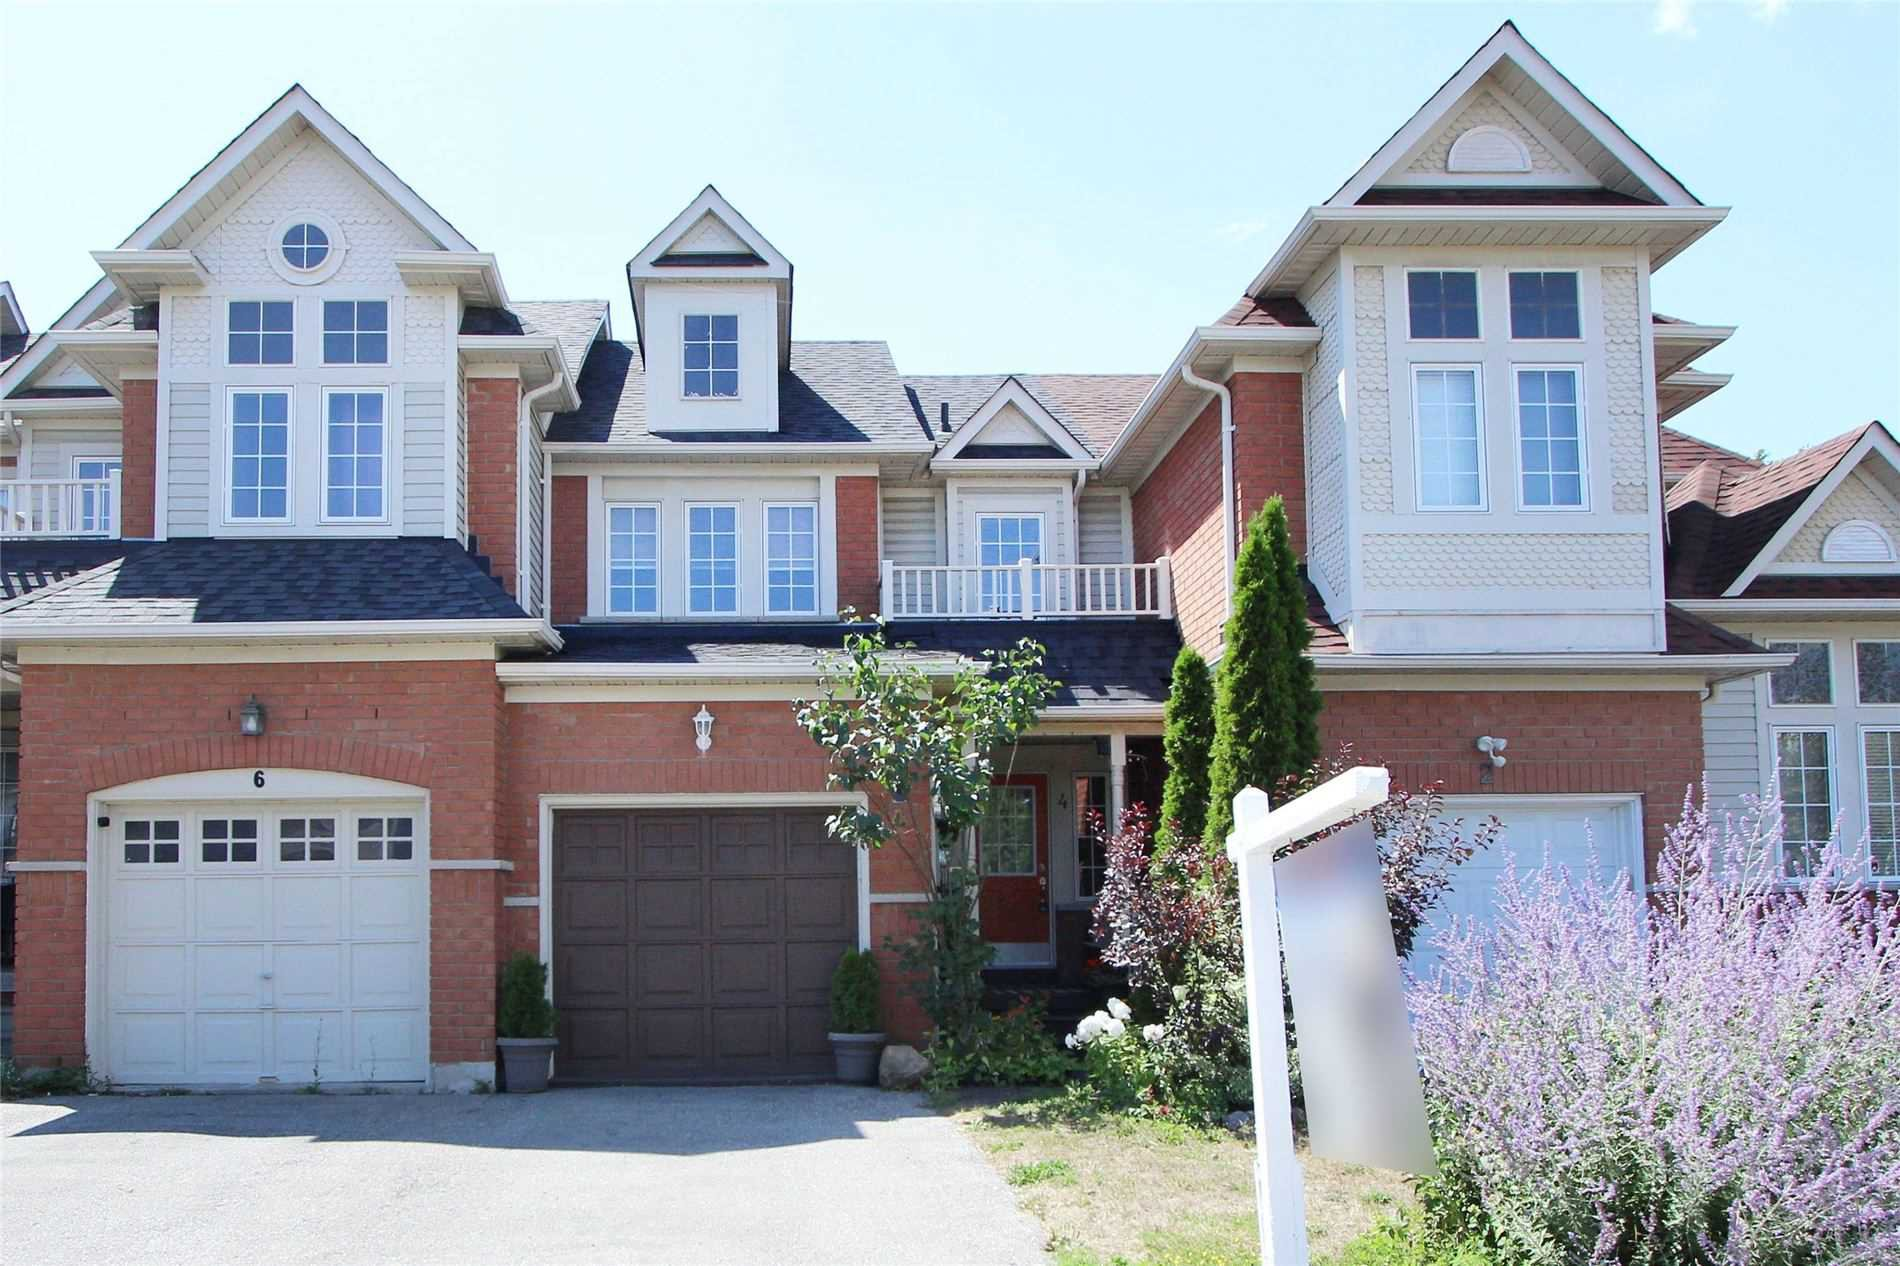 Main Photo: 4 Whitewater St in Whitby: Freehold for sale : MLS®# E4863589